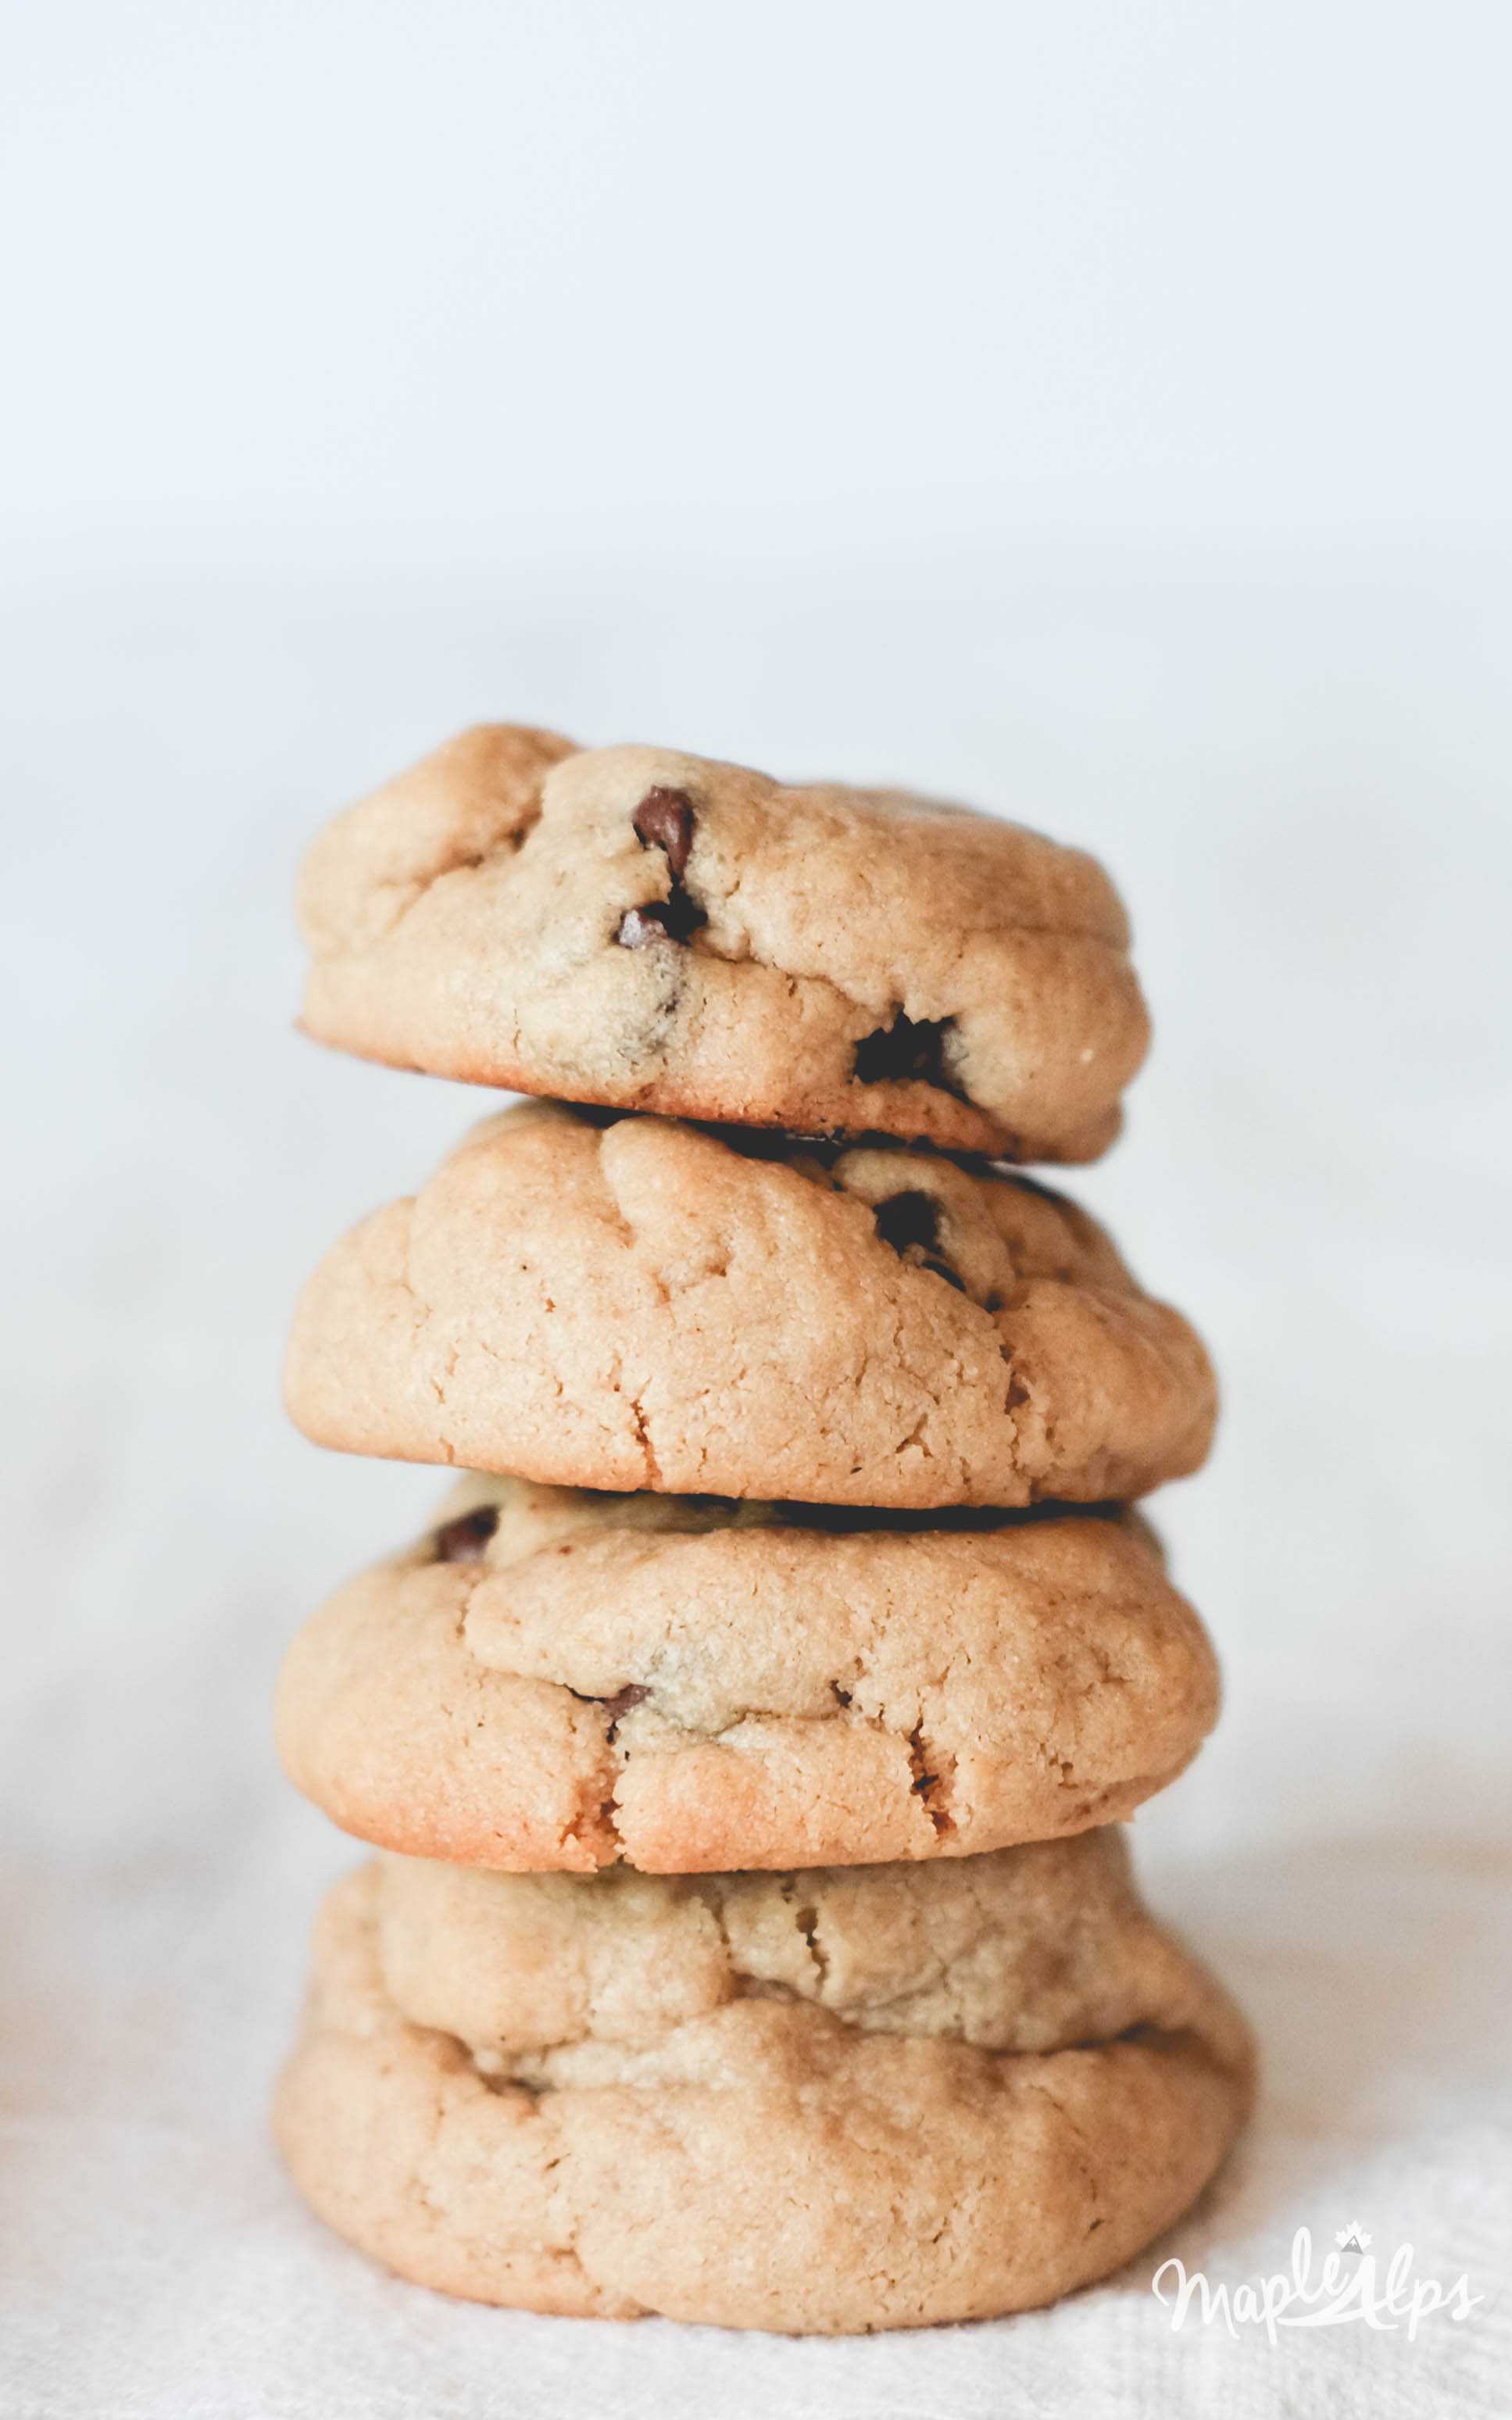 Seriously delcious Peanut Butter Chocolate Chip Cookies - #Vegan and #GlutenFree?! Yes please!! | www.maplealps.com